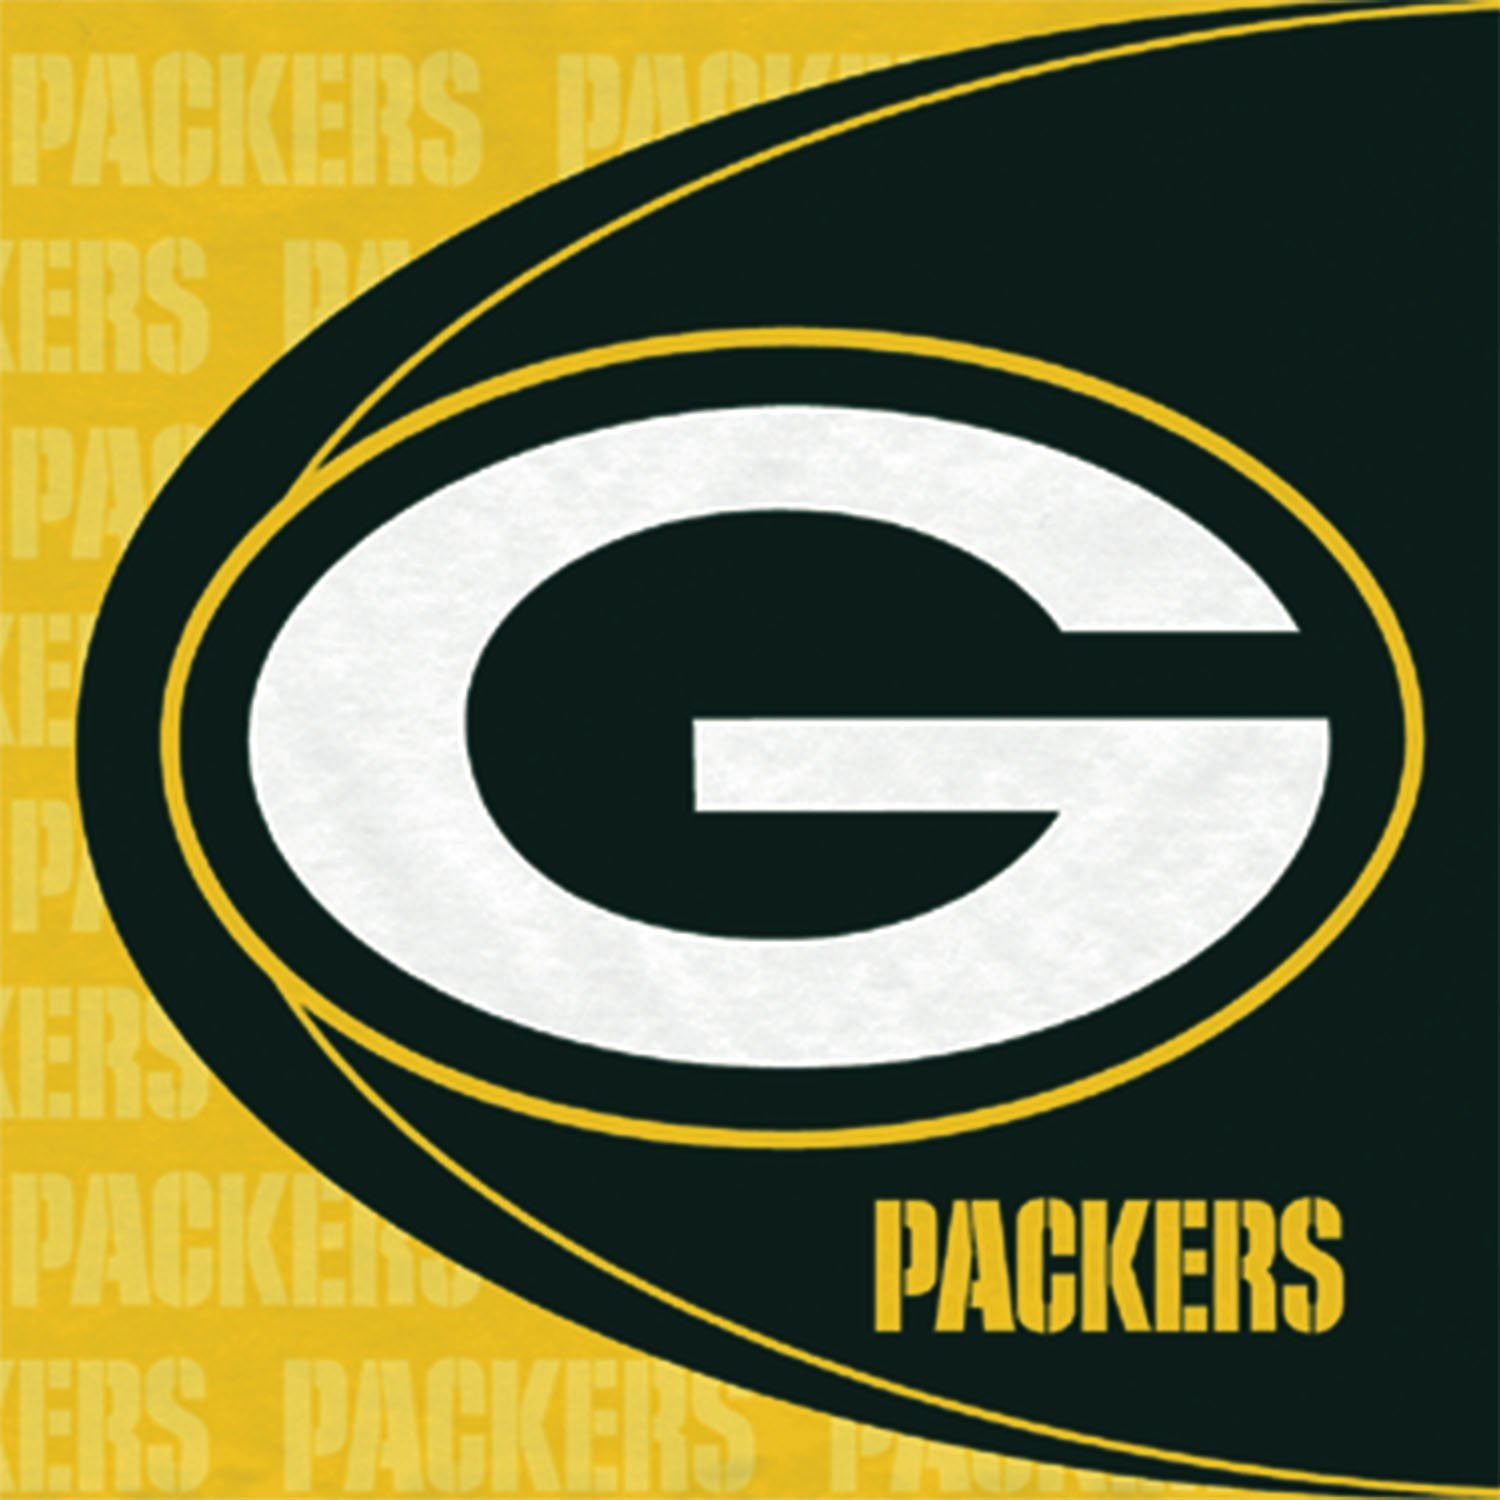 savings school go green bay packers png logo #2944